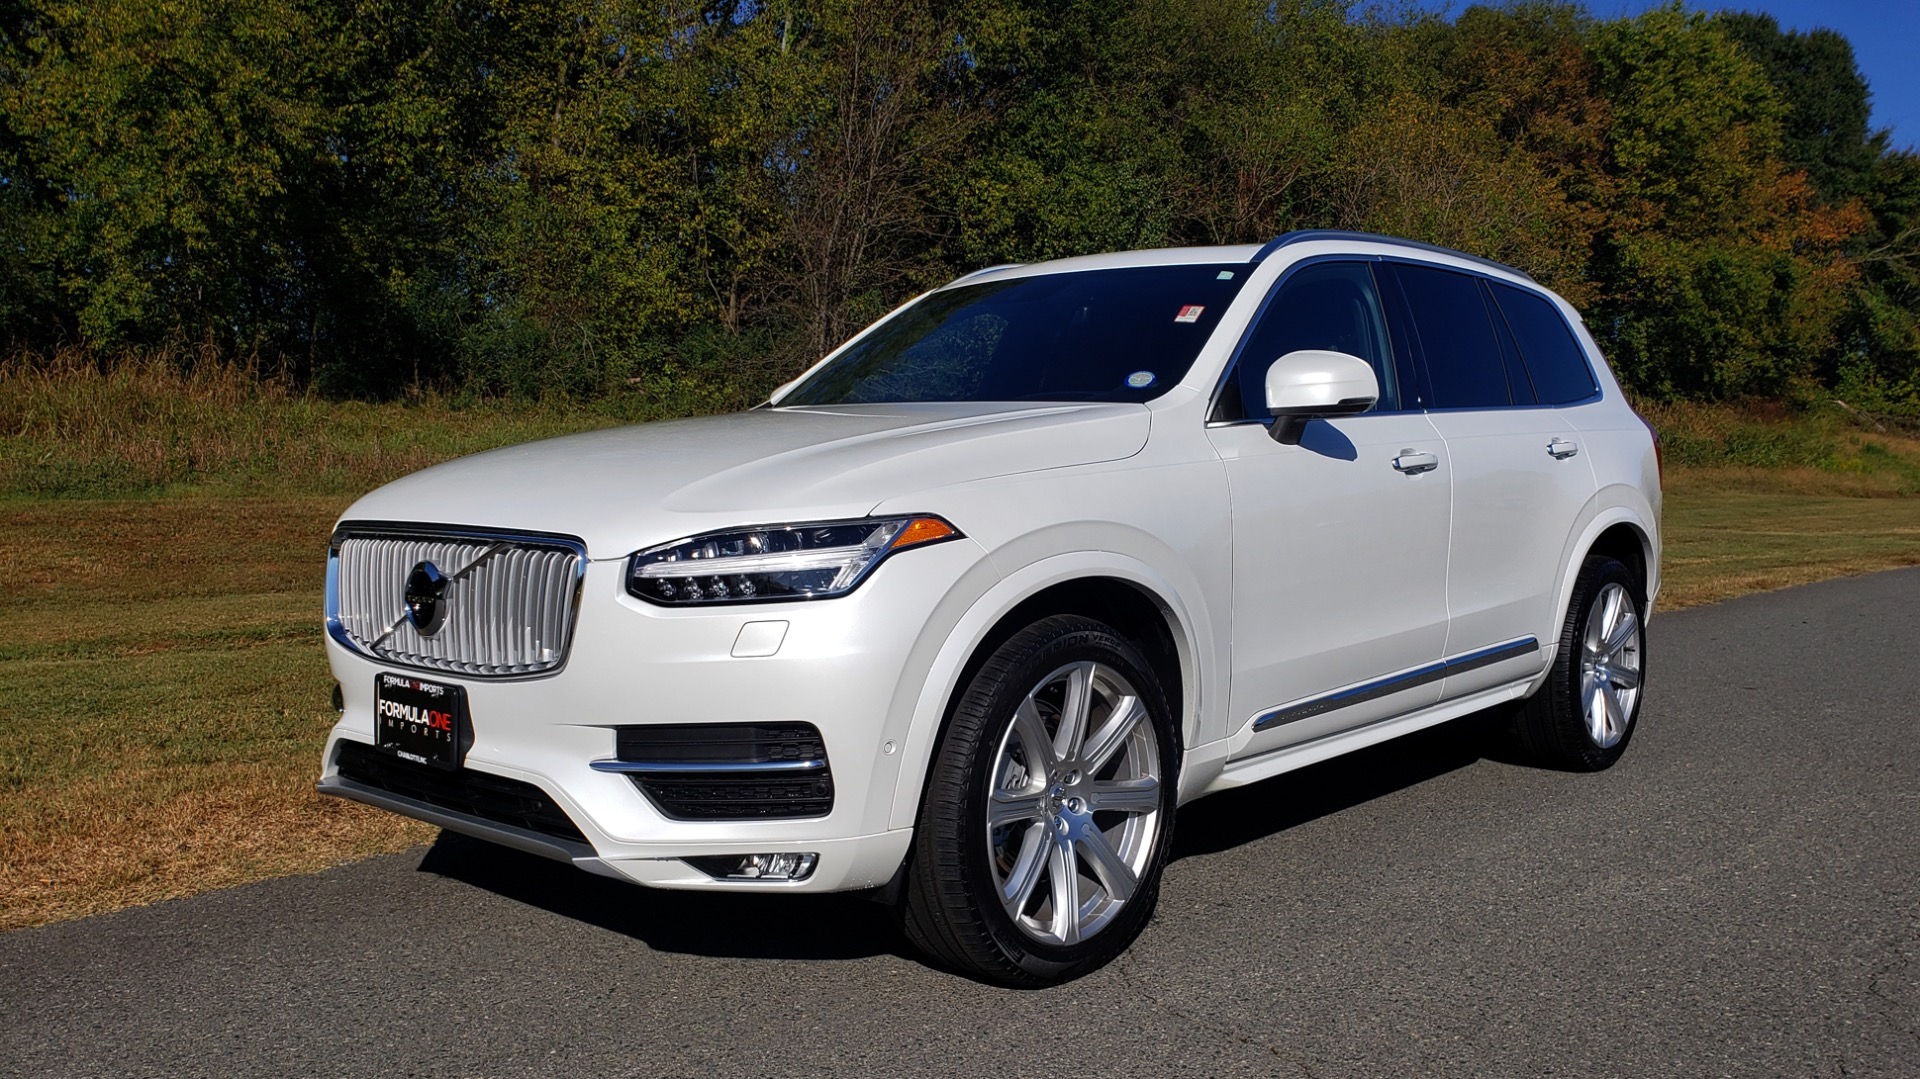 Used 2017 Volvo XC90 INSCRIPTION / AWD / NAV / SUNROOF / 3-ROW / CAMERA for sale Sold at Formula Imports in Charlotte NC 28227 1